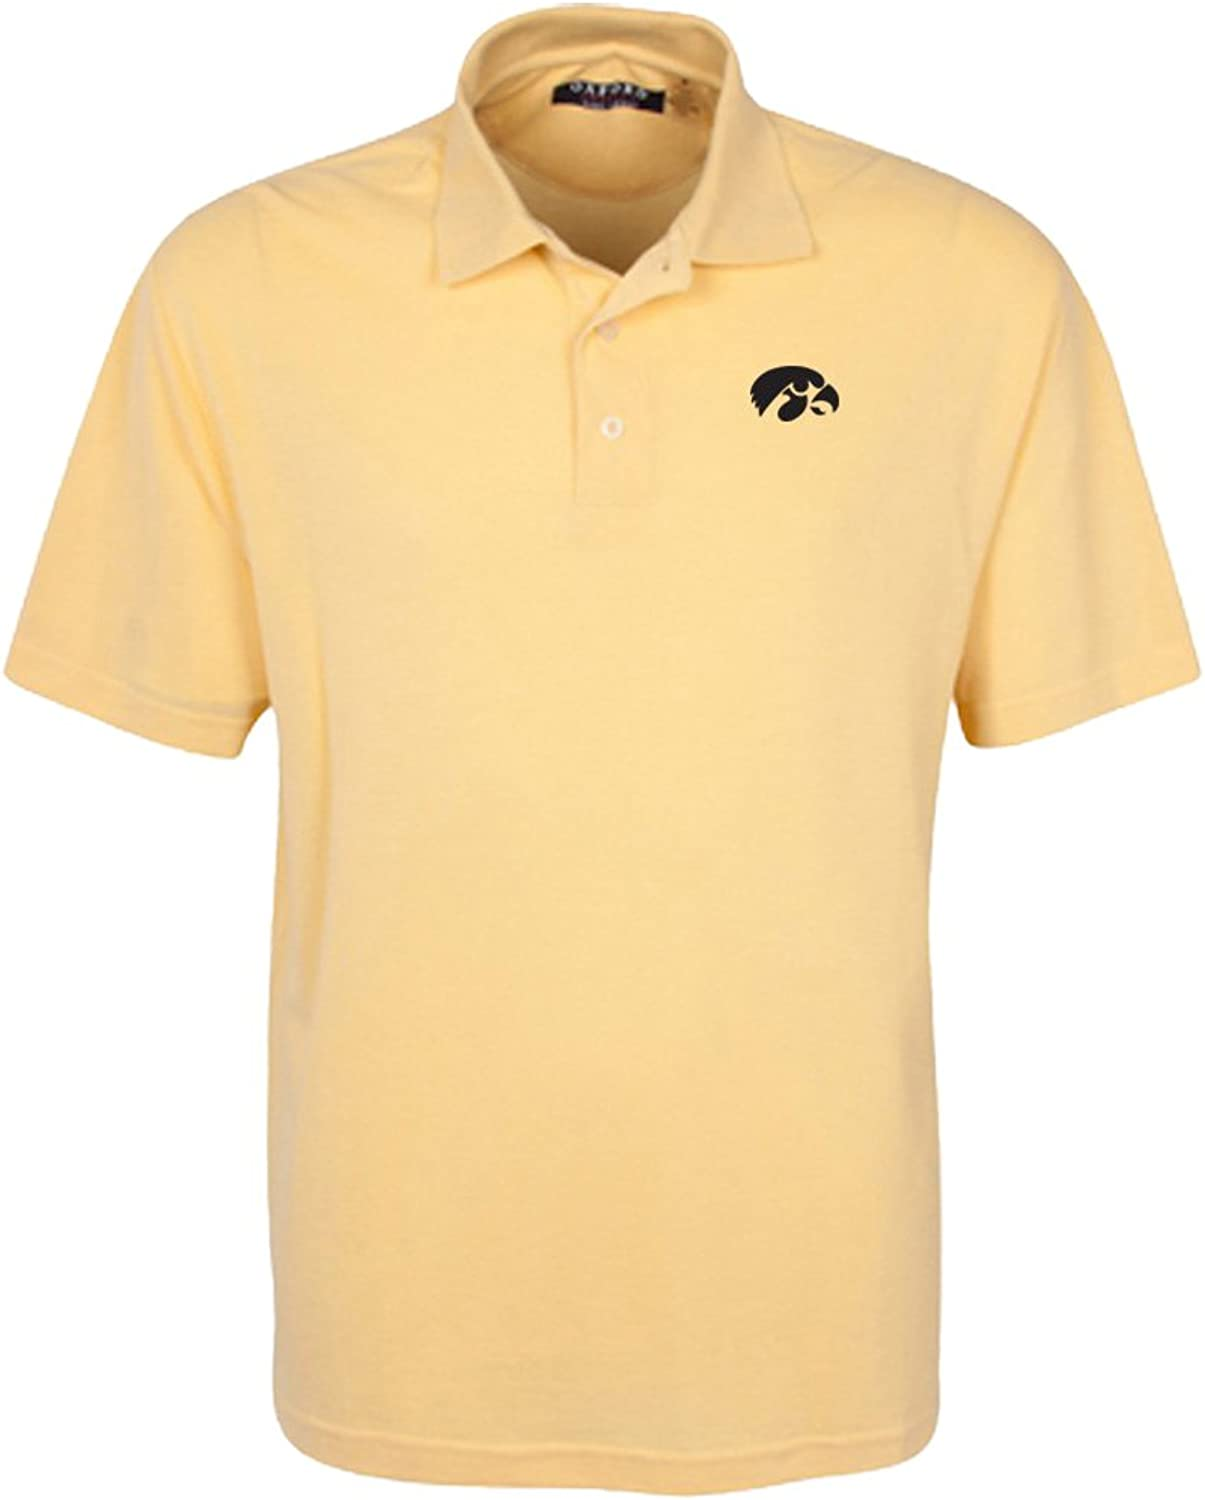 Oxford NCAA Iowa Hawkeyes Men's 3 Button Polo with Hemmed Sleeves